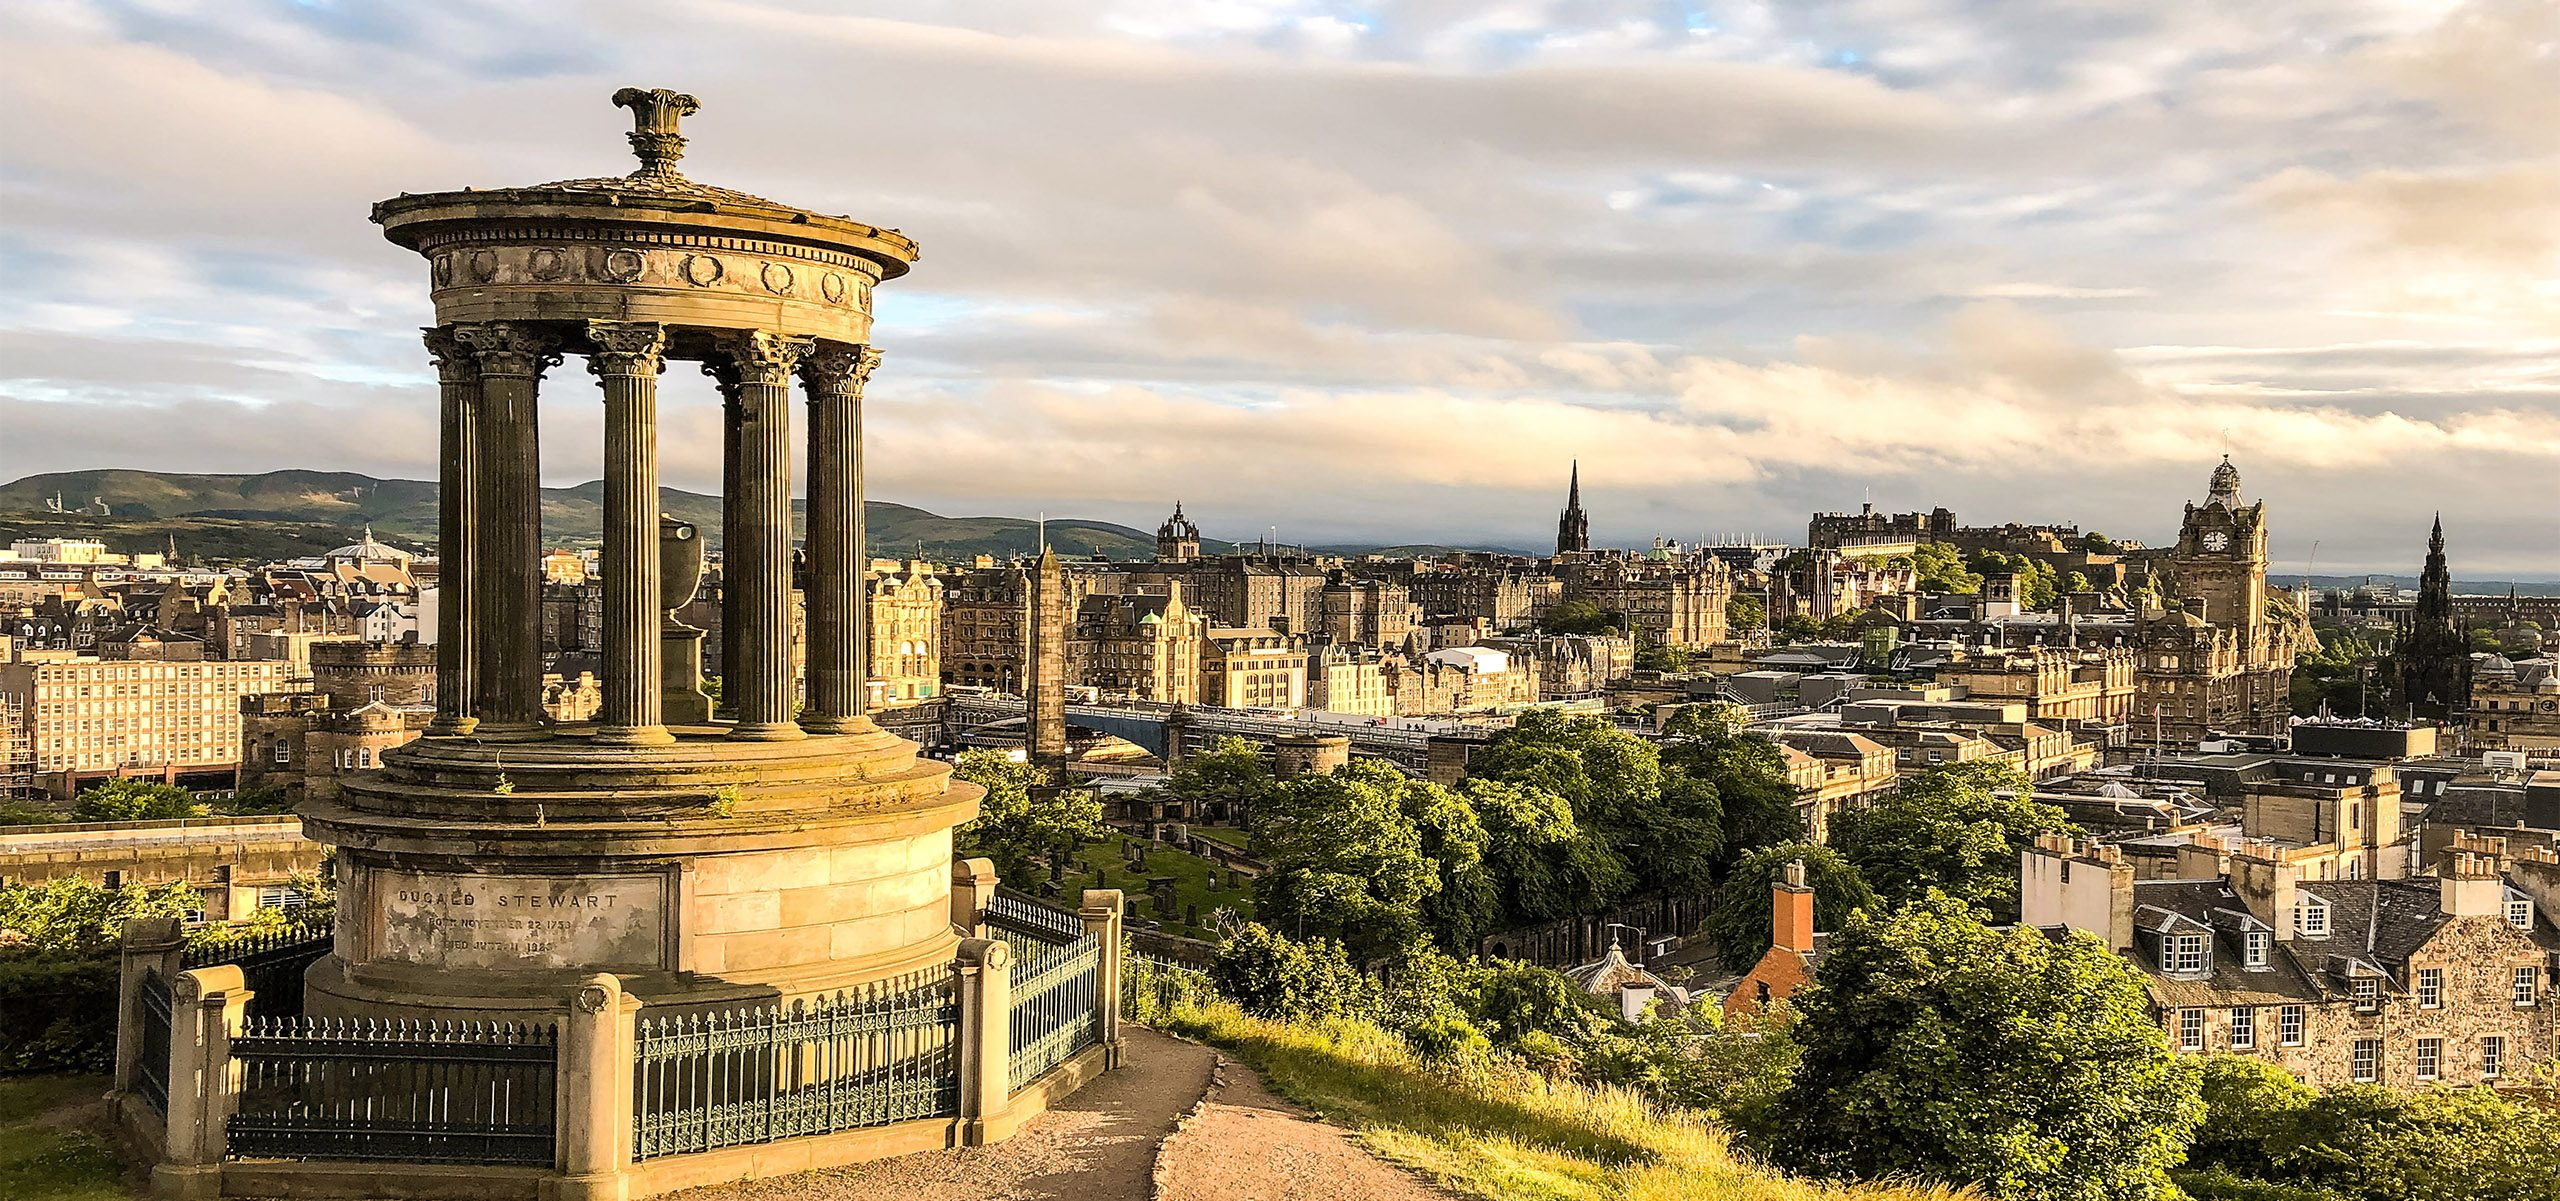 Scotland - Edinburgh - Calton Hill